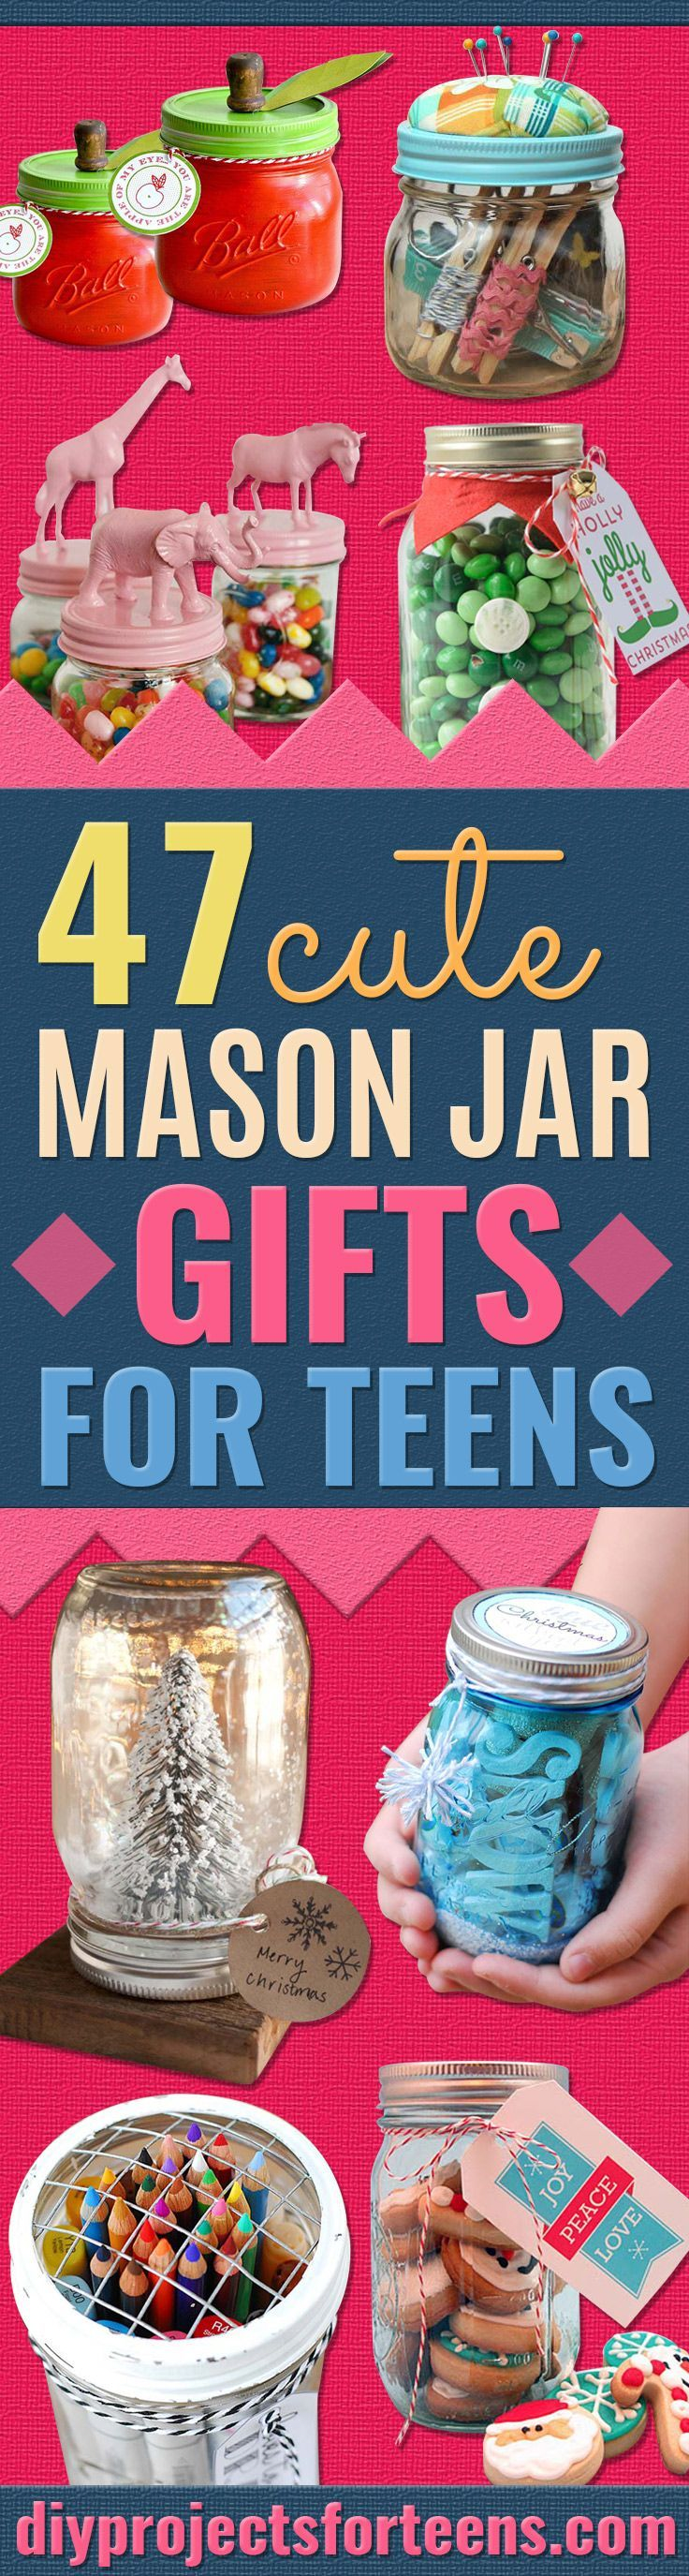 Balm christmas gift turn old eos containers into cool crafts ideas - 47 Cute Mason Jar Gifts For Teens